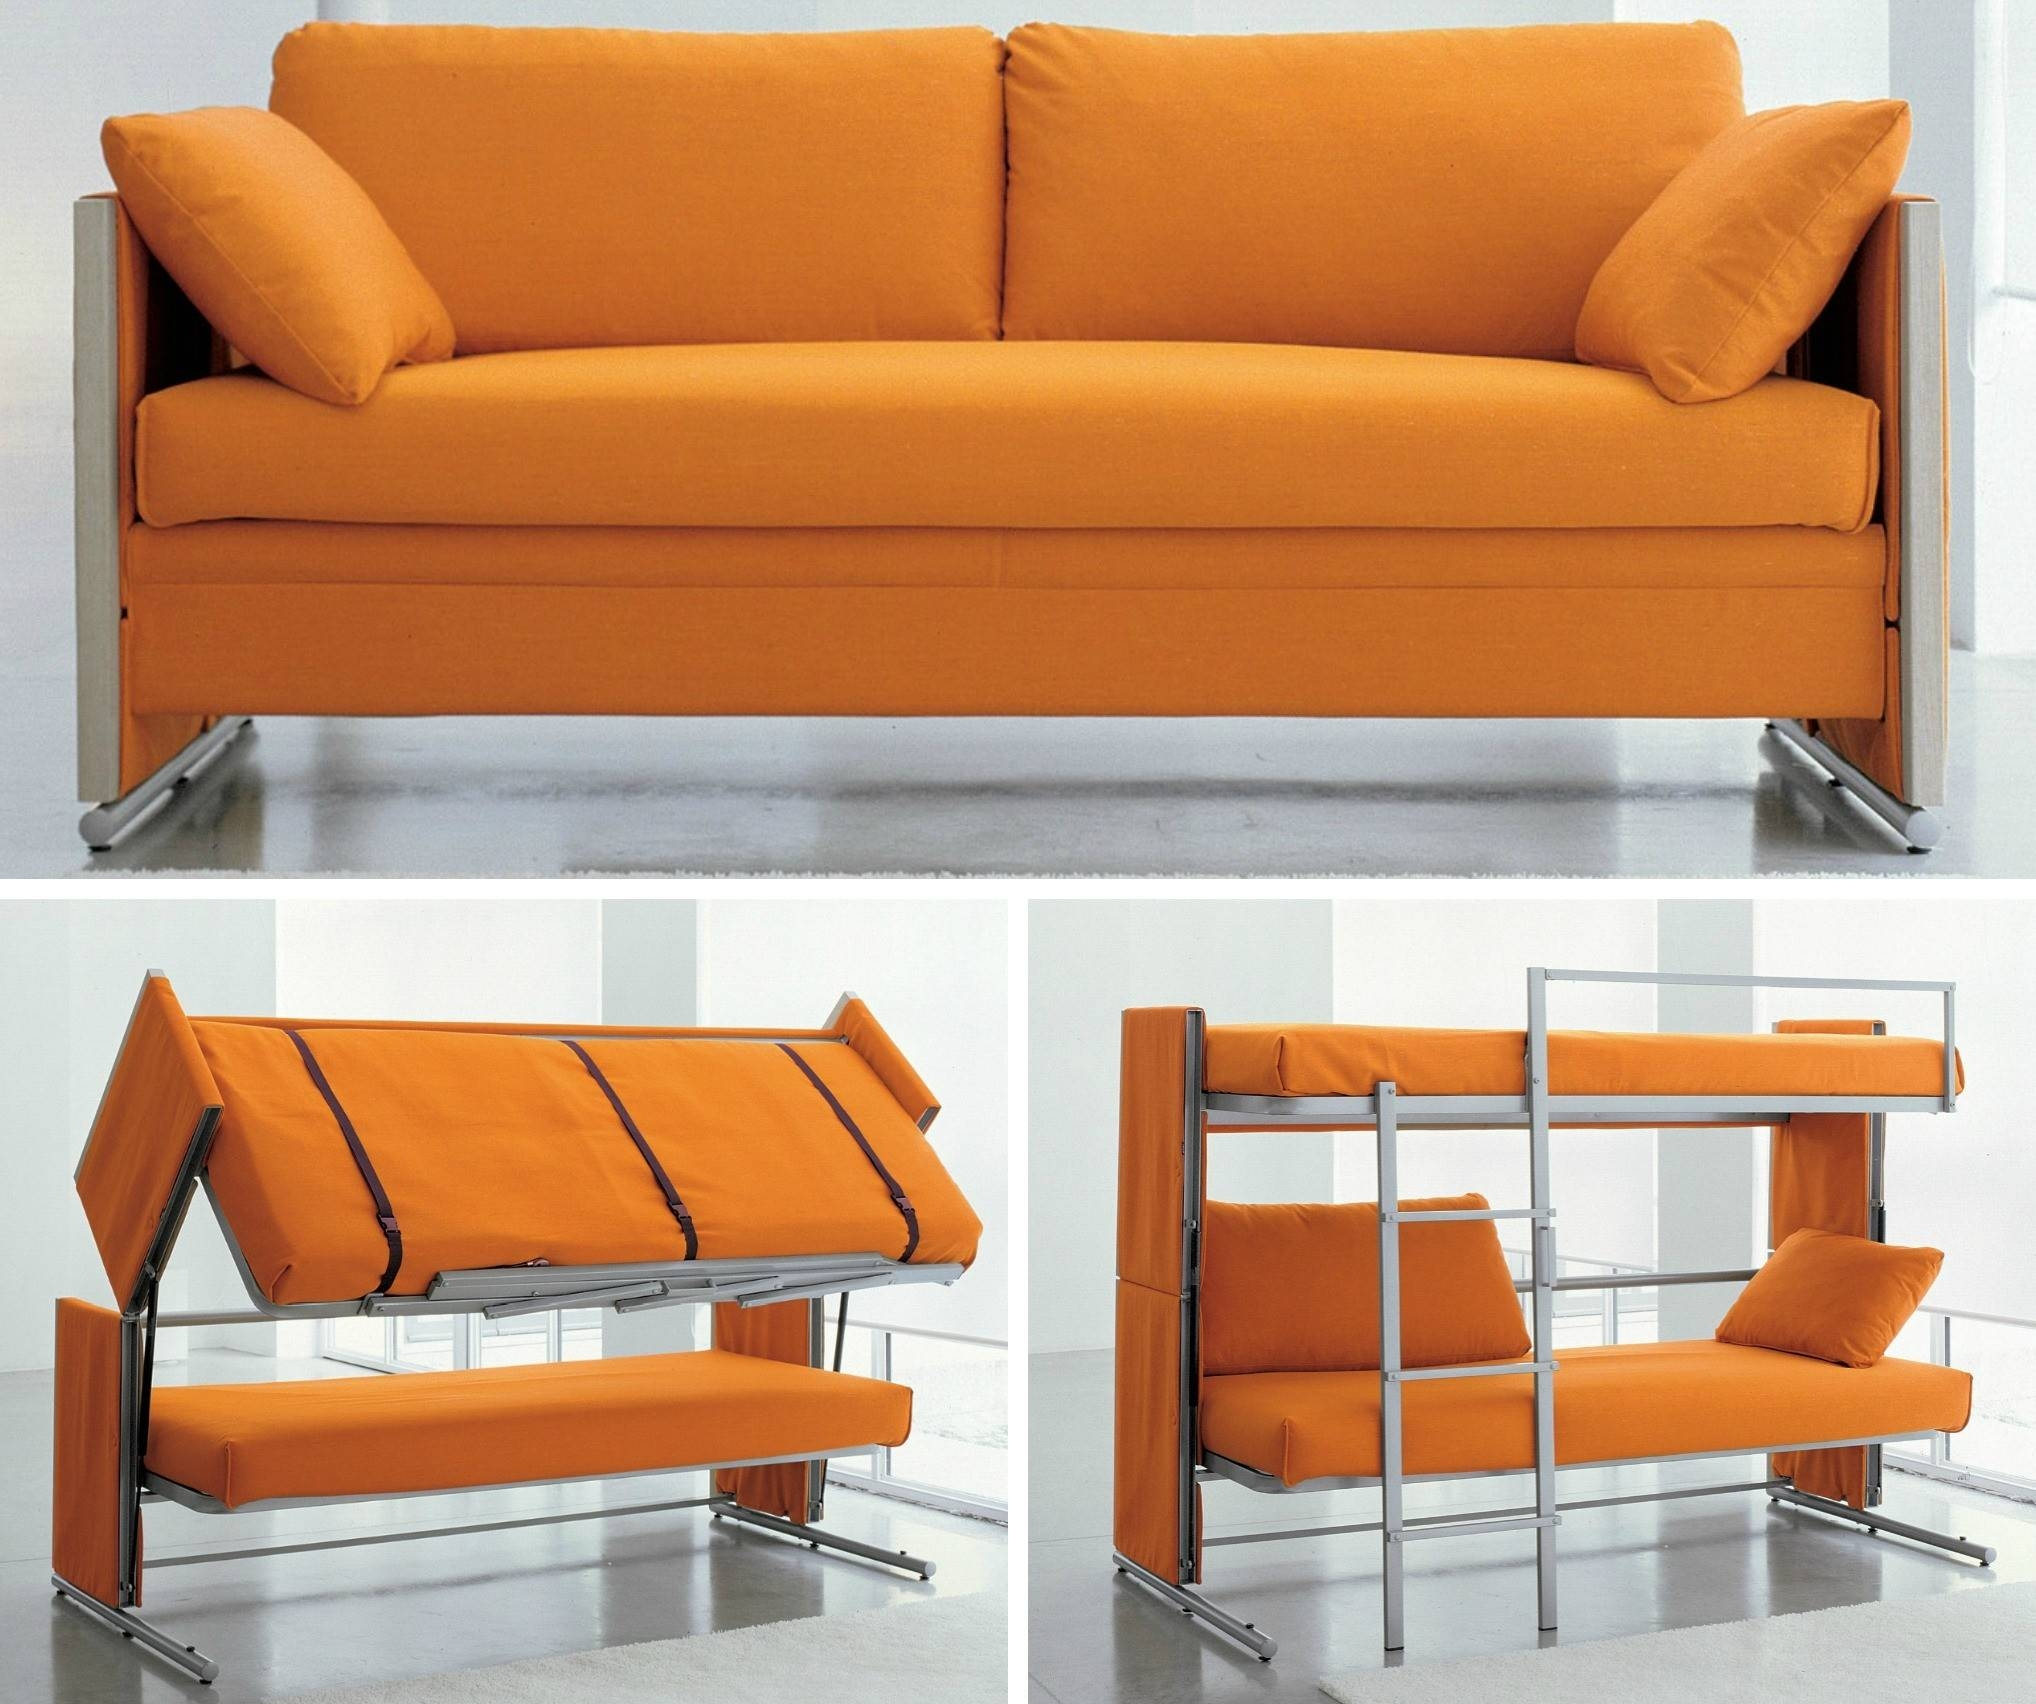 Doc Transforms From Sofa To Bunk Beds With One Swift Motion | 6Sqft inside Sofa Bunk Beds (Image 12 of 30)